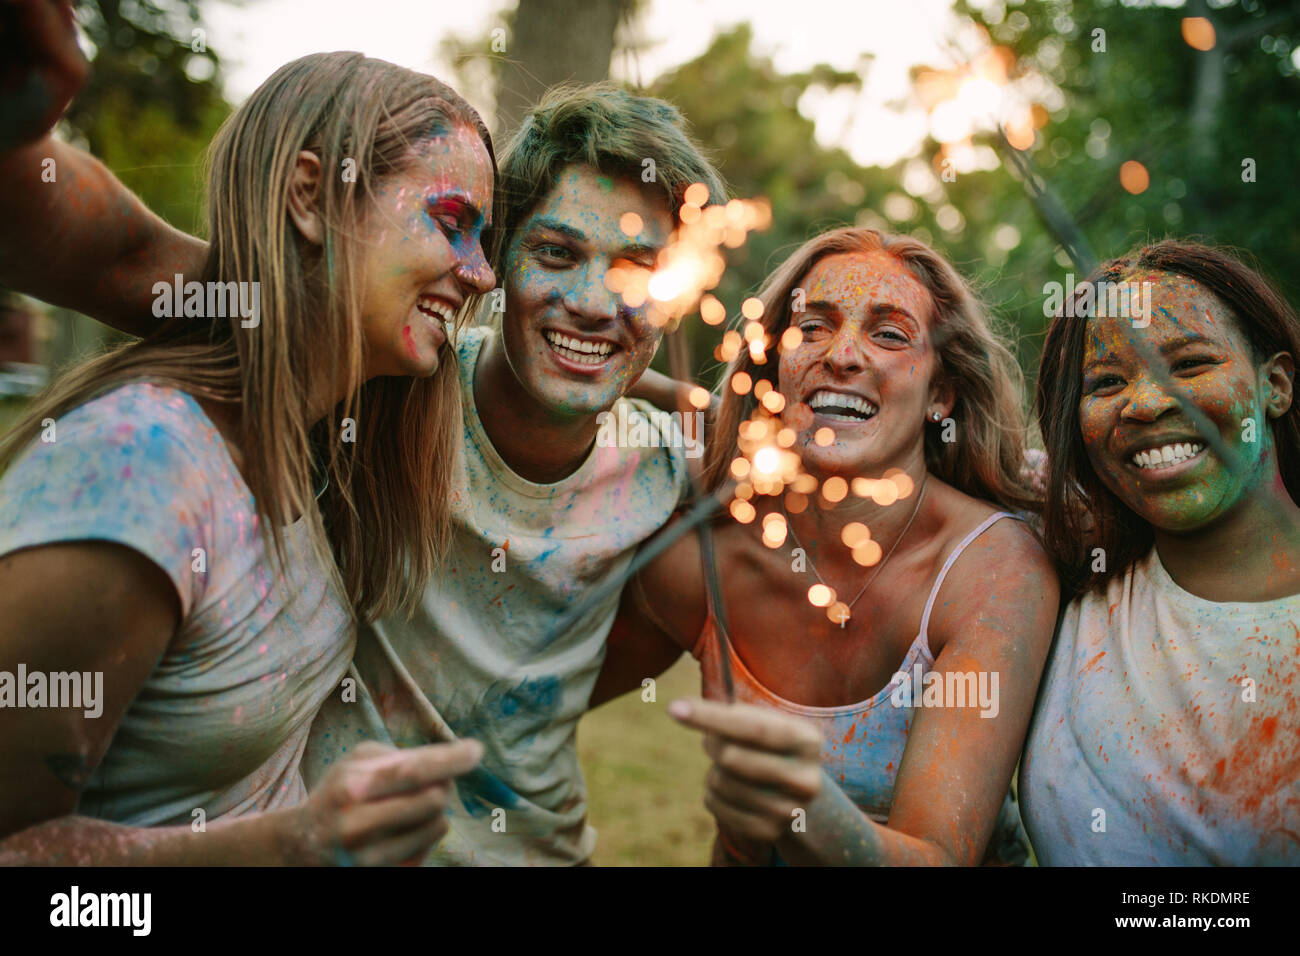 Friends having fun playing with fire sparkles while playing holi in a park. Friends enjoying holi with fire sparkles. - Stock Image